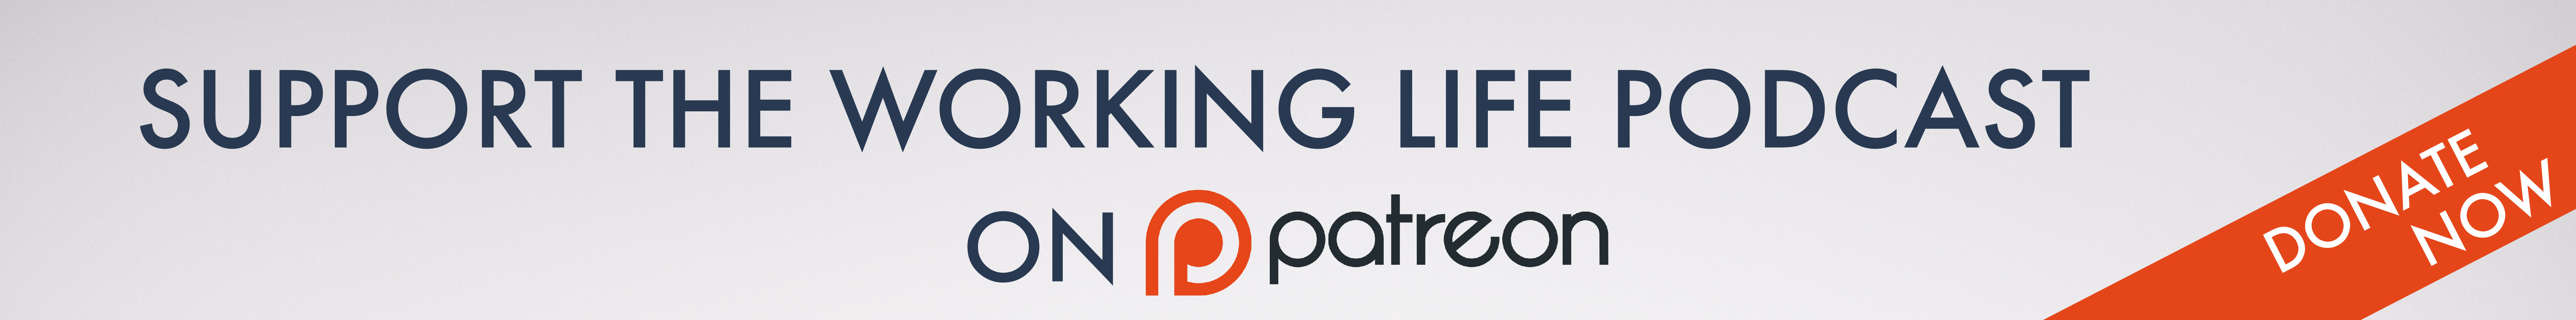 Support the Working Life Podcast on Patreon.  Donate Now.